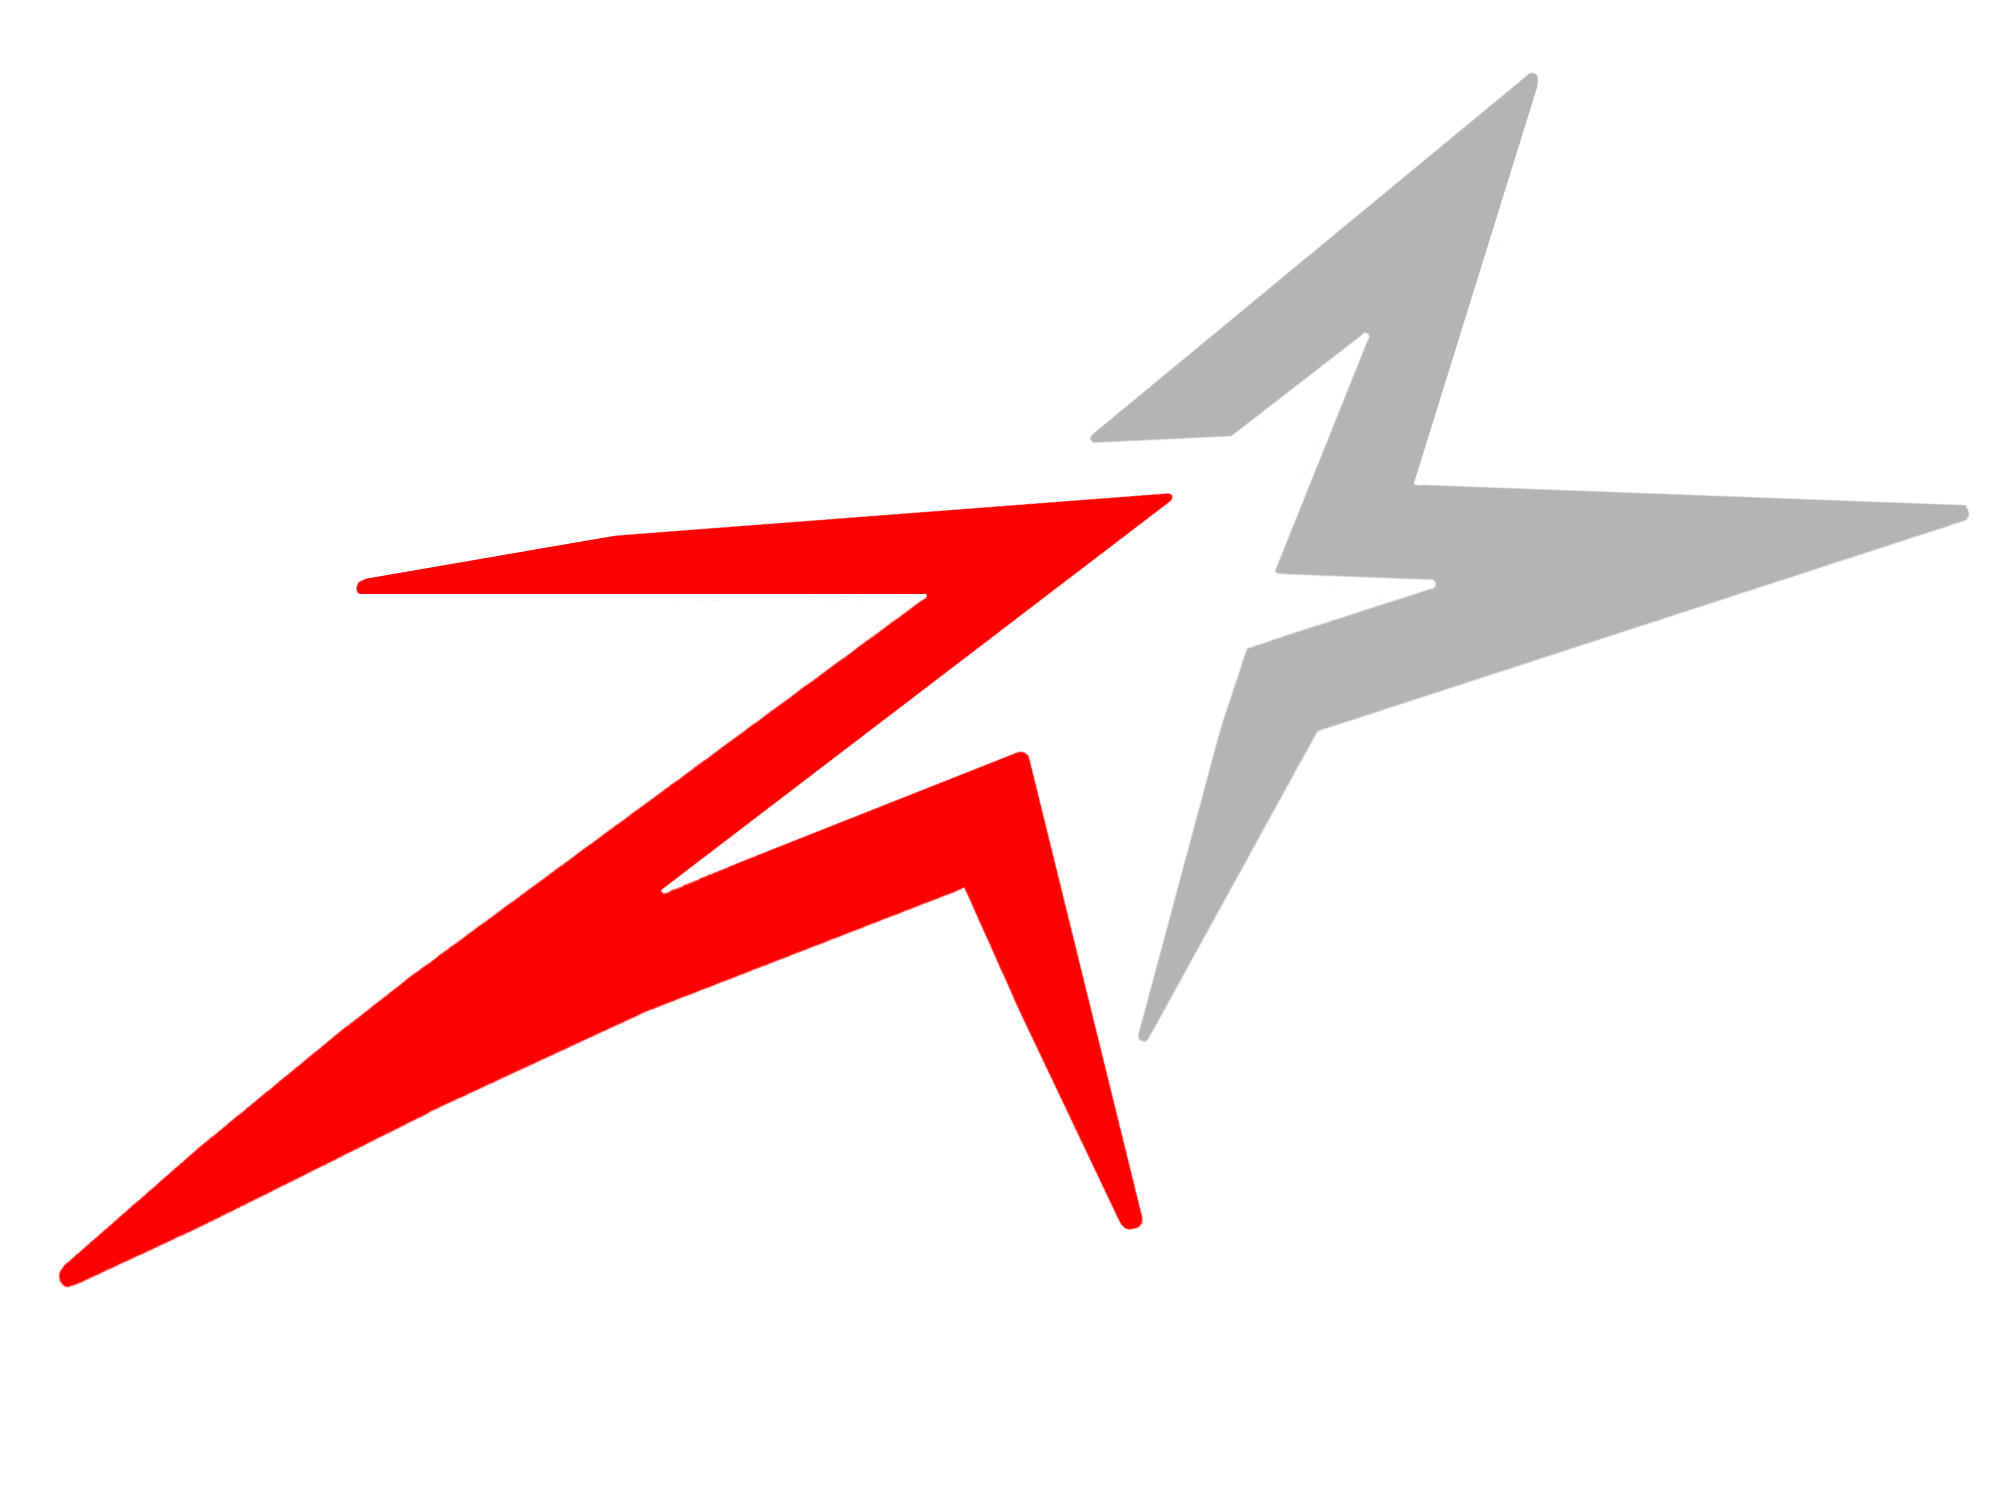 red star logo page 3 pics about space